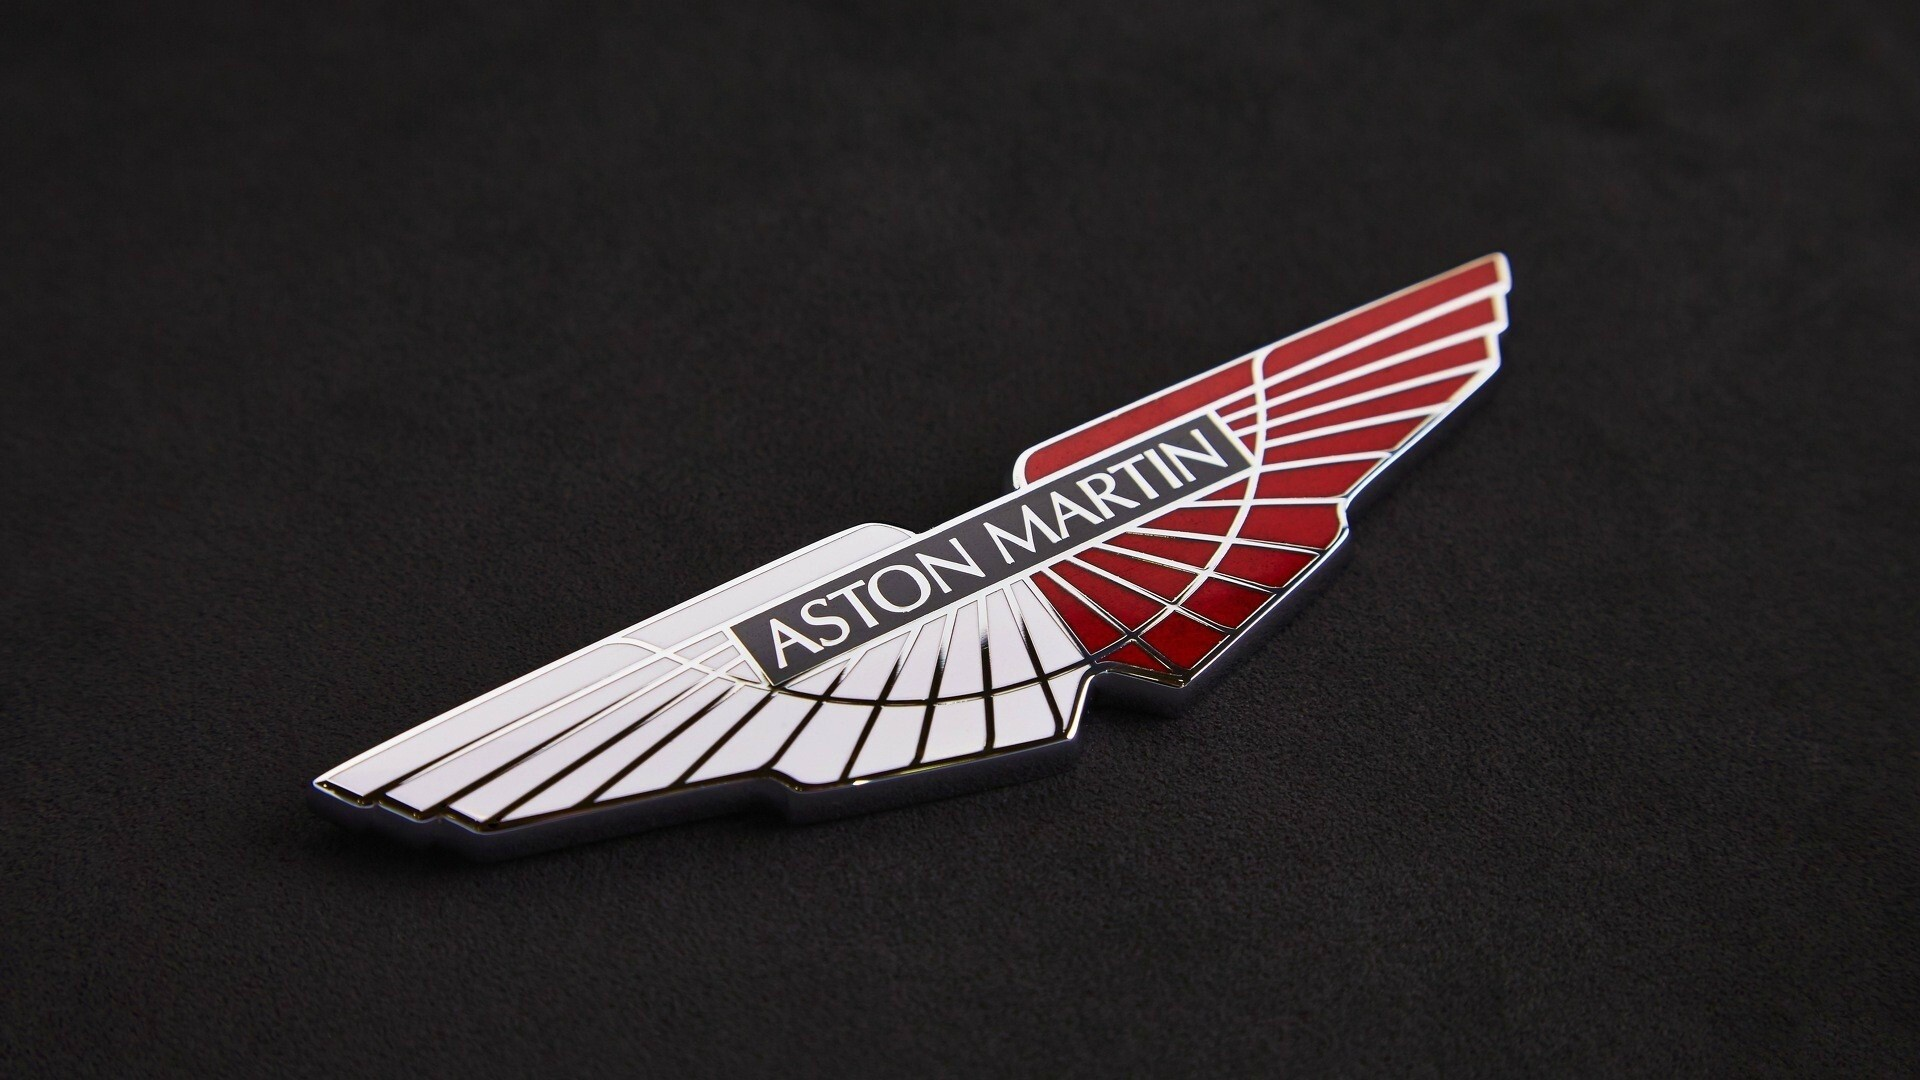 aston martin logo hd wallpaper | hd wallpapers